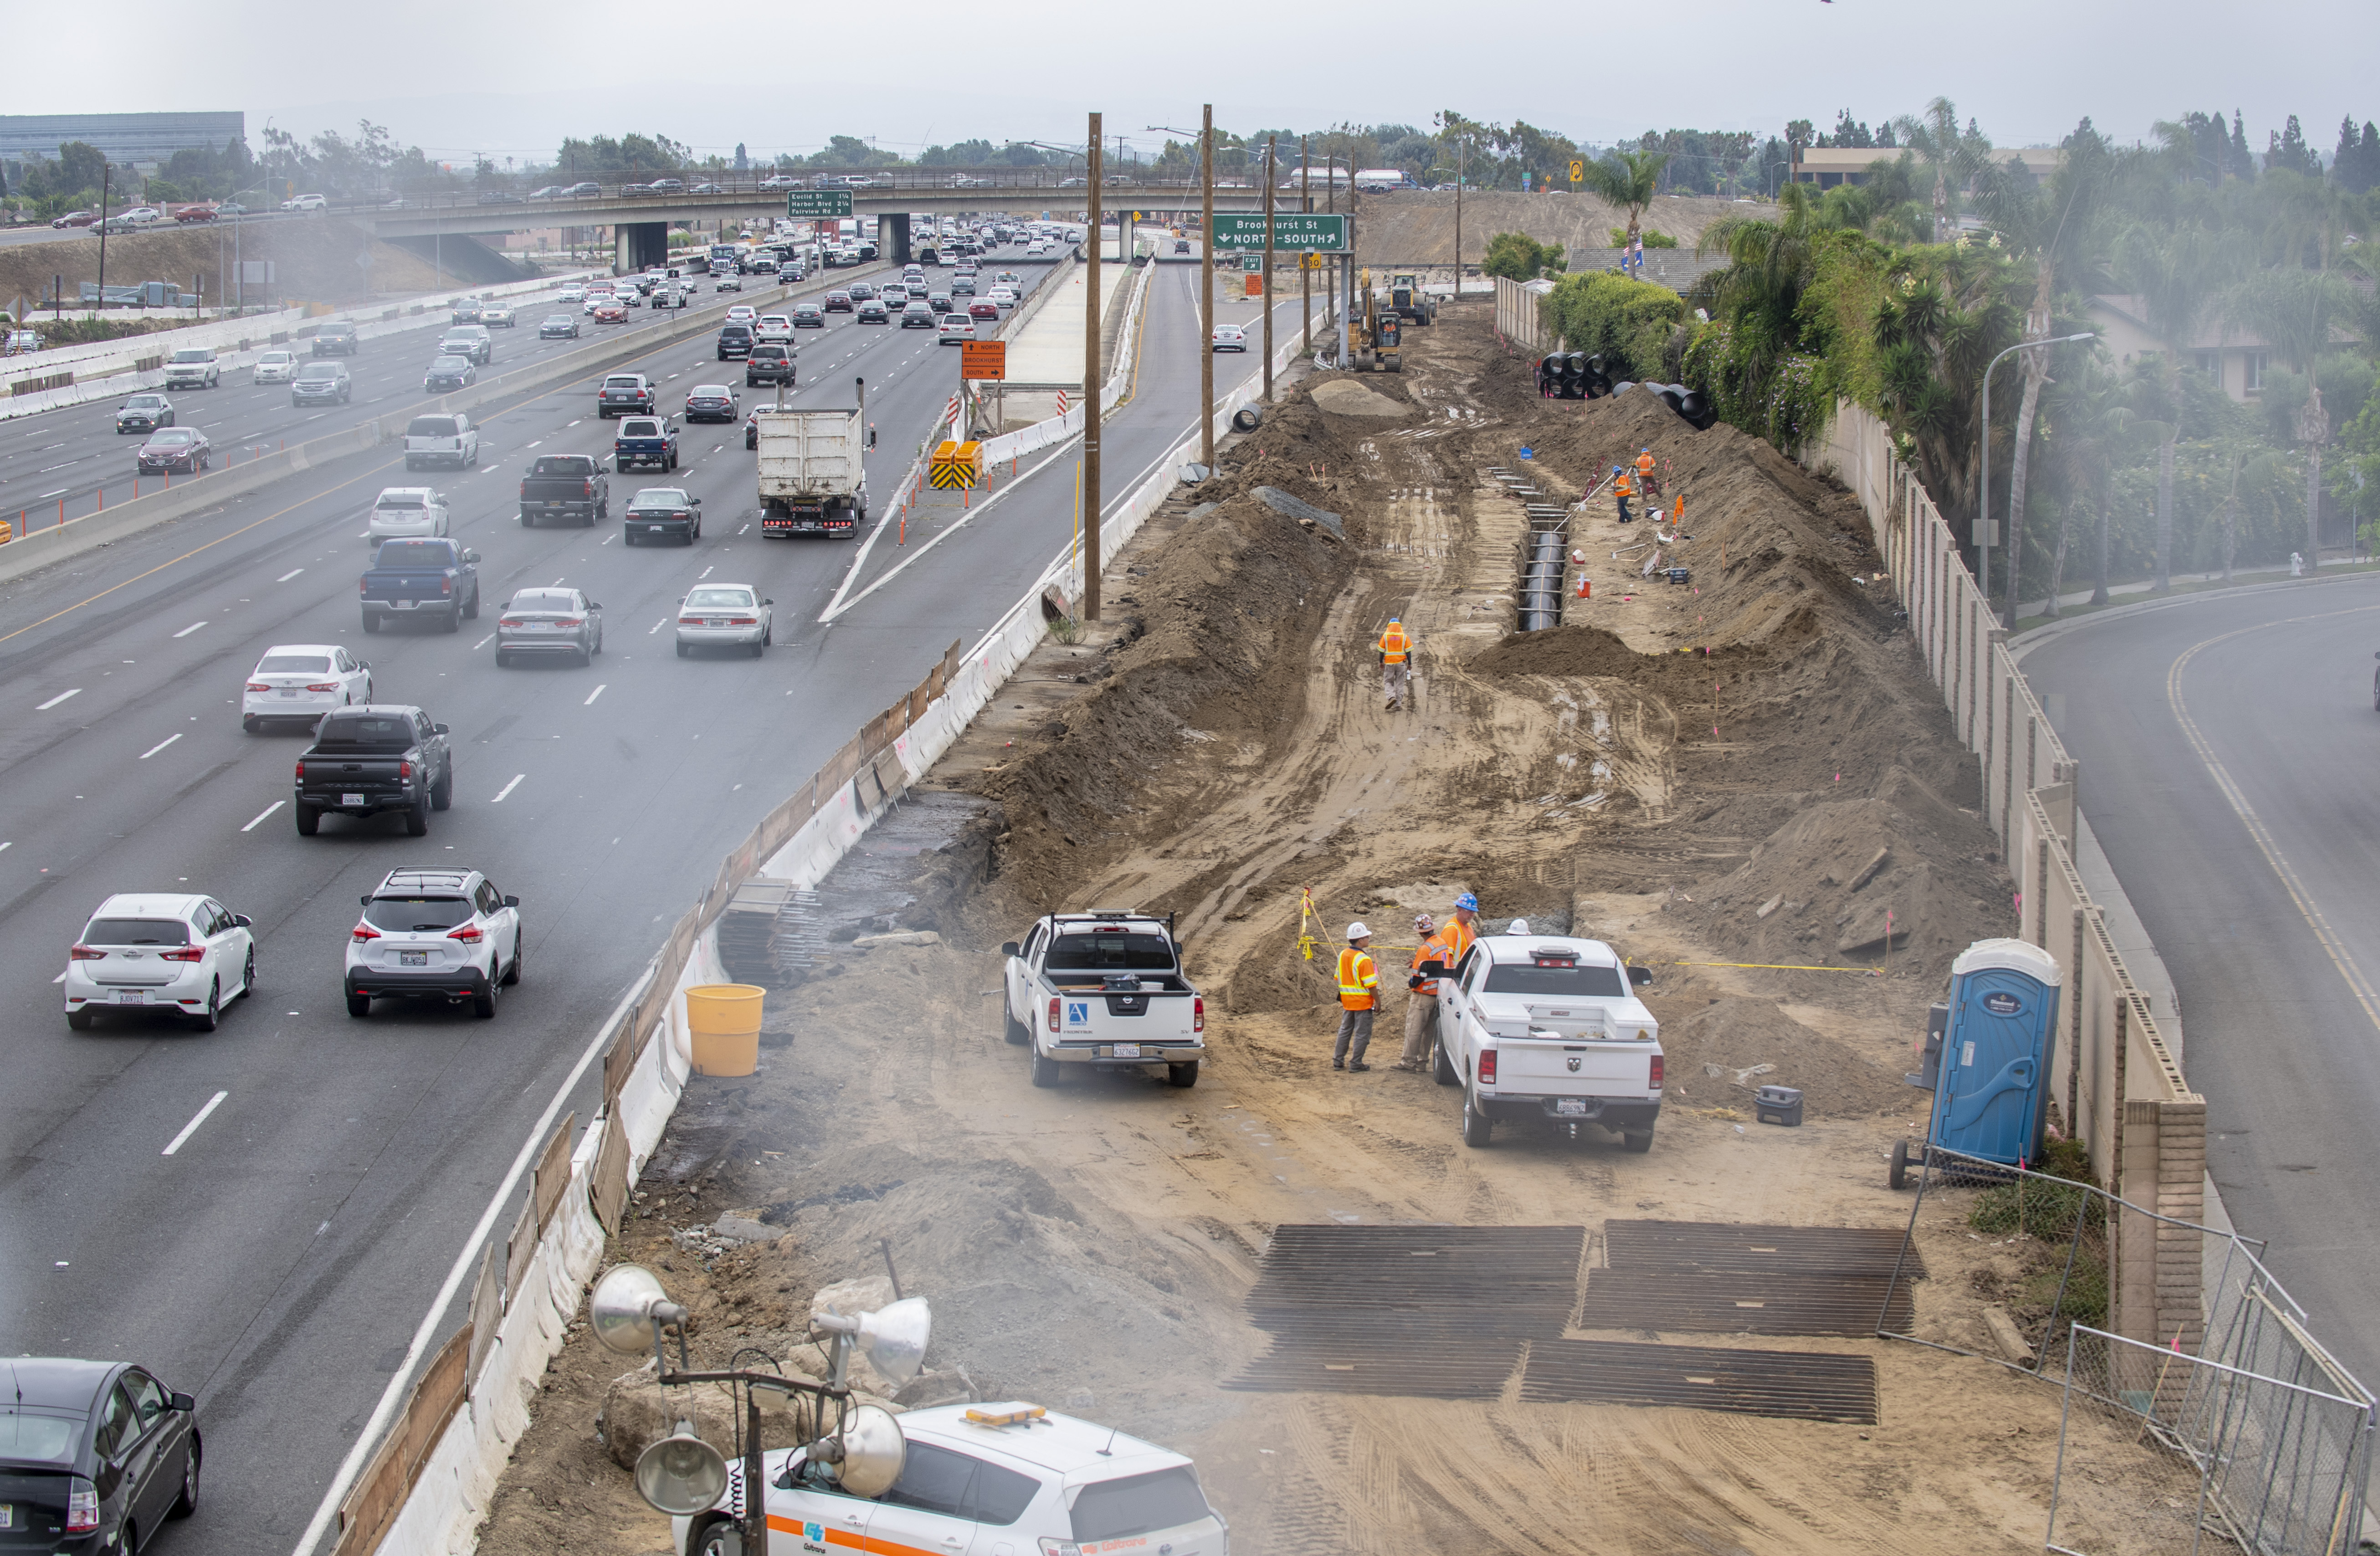 Native American burial site discovered during construction work on California highway